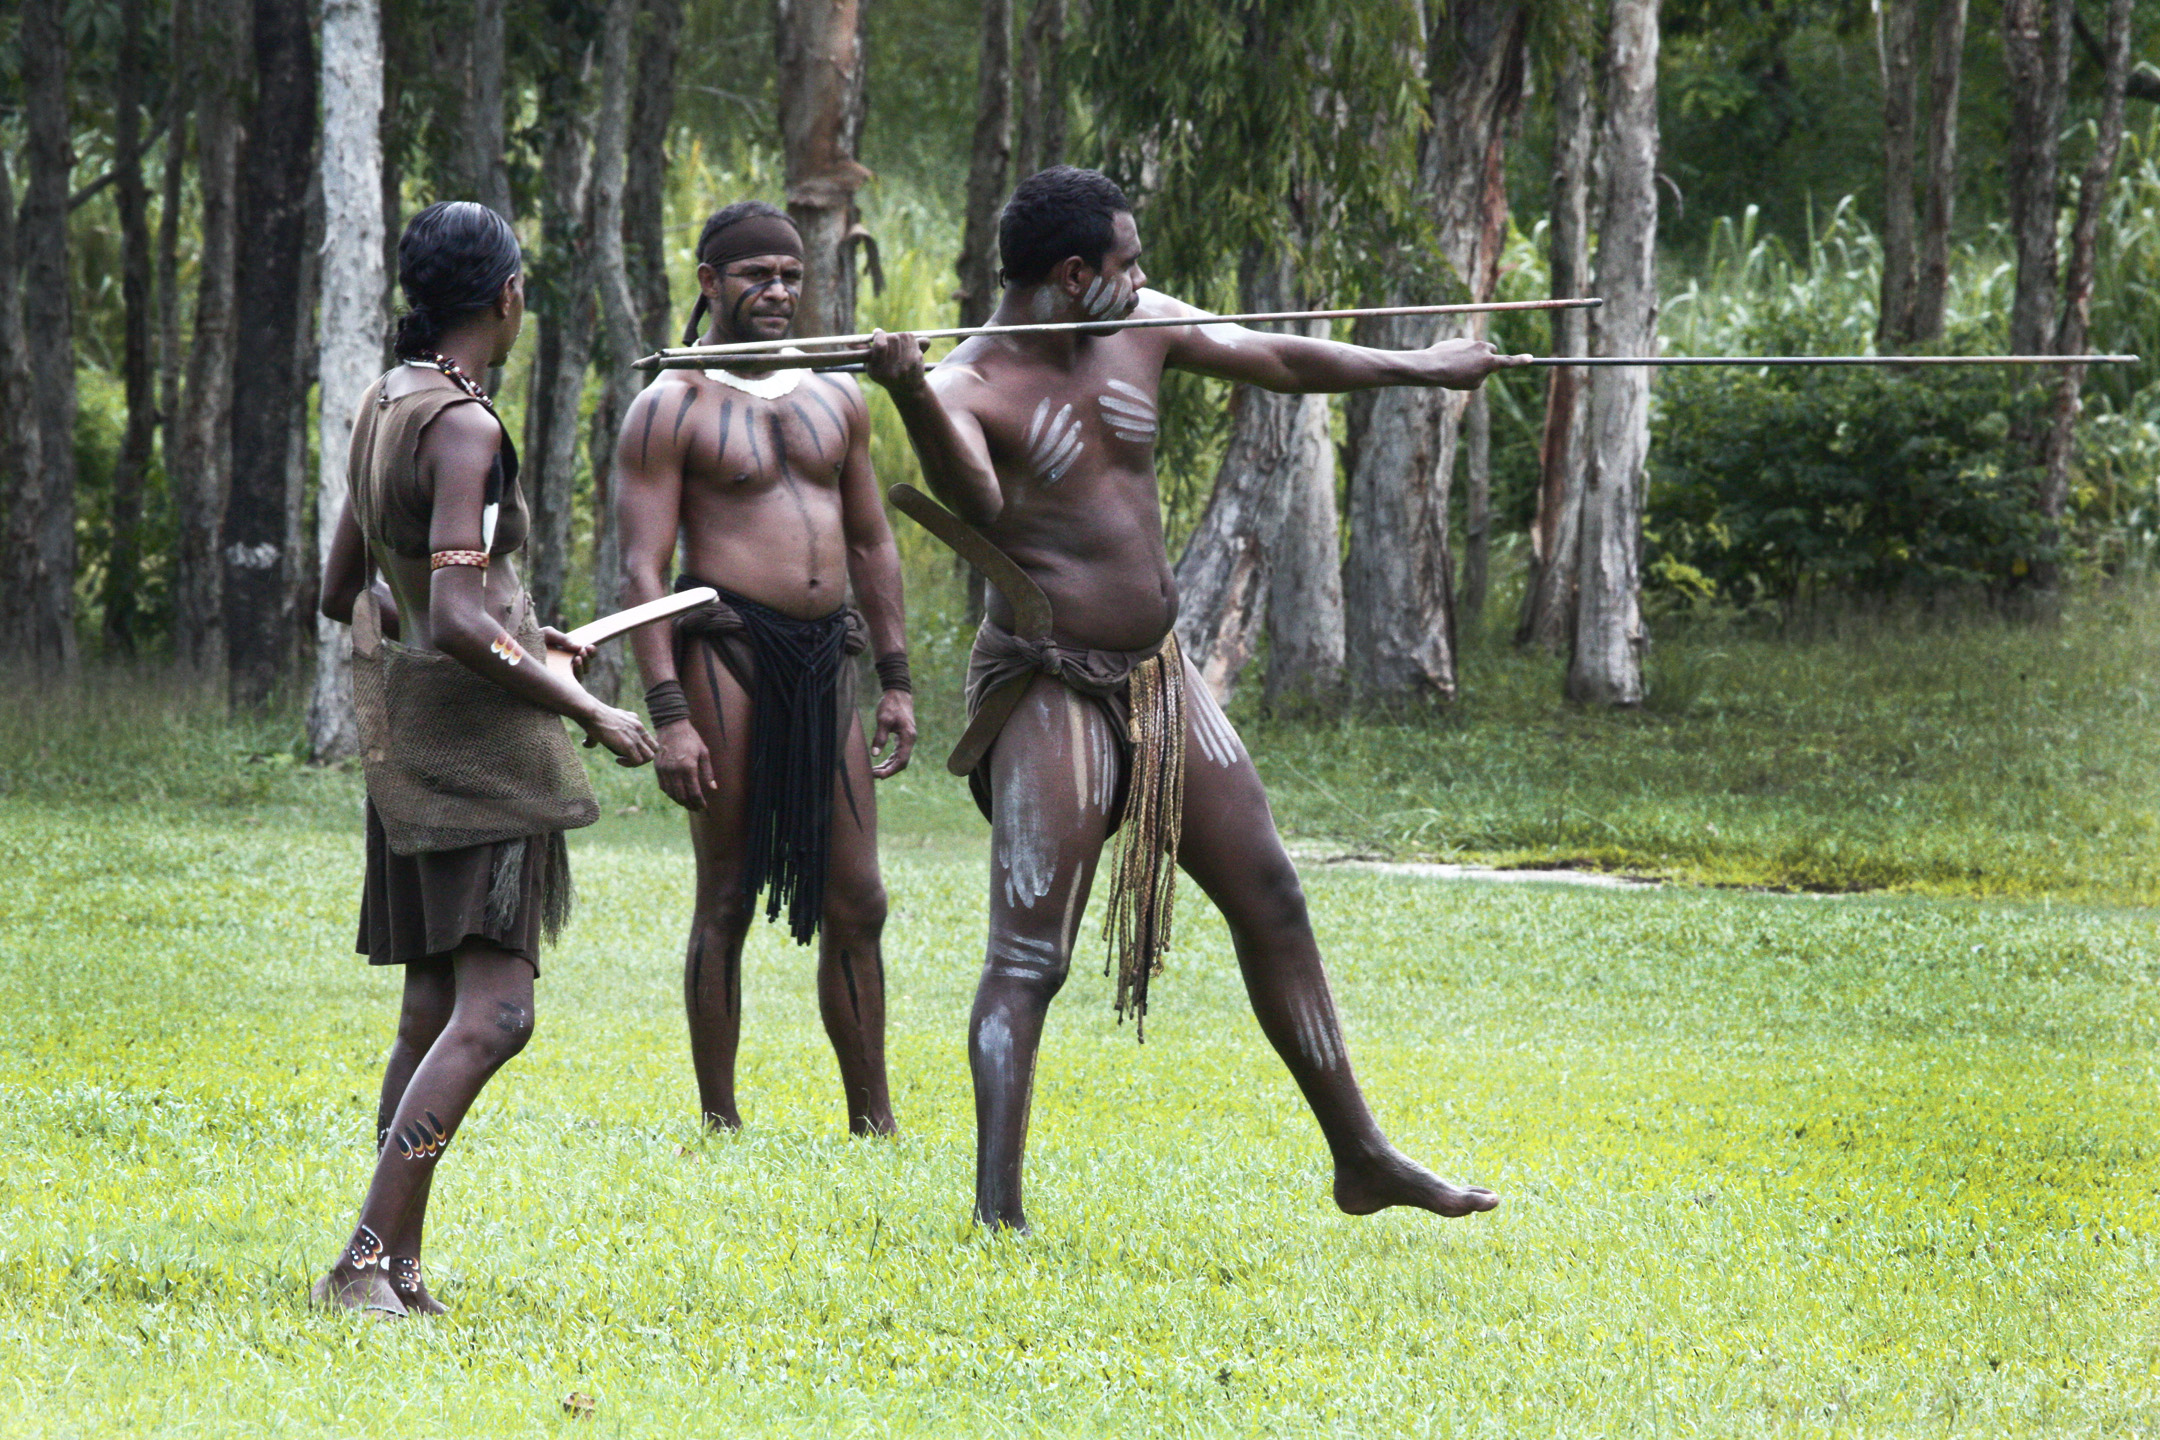 https://upload.wikimedia.org/wikipedia/commons/f/ff/Australia_Aboriginal_Culture_011.jpg